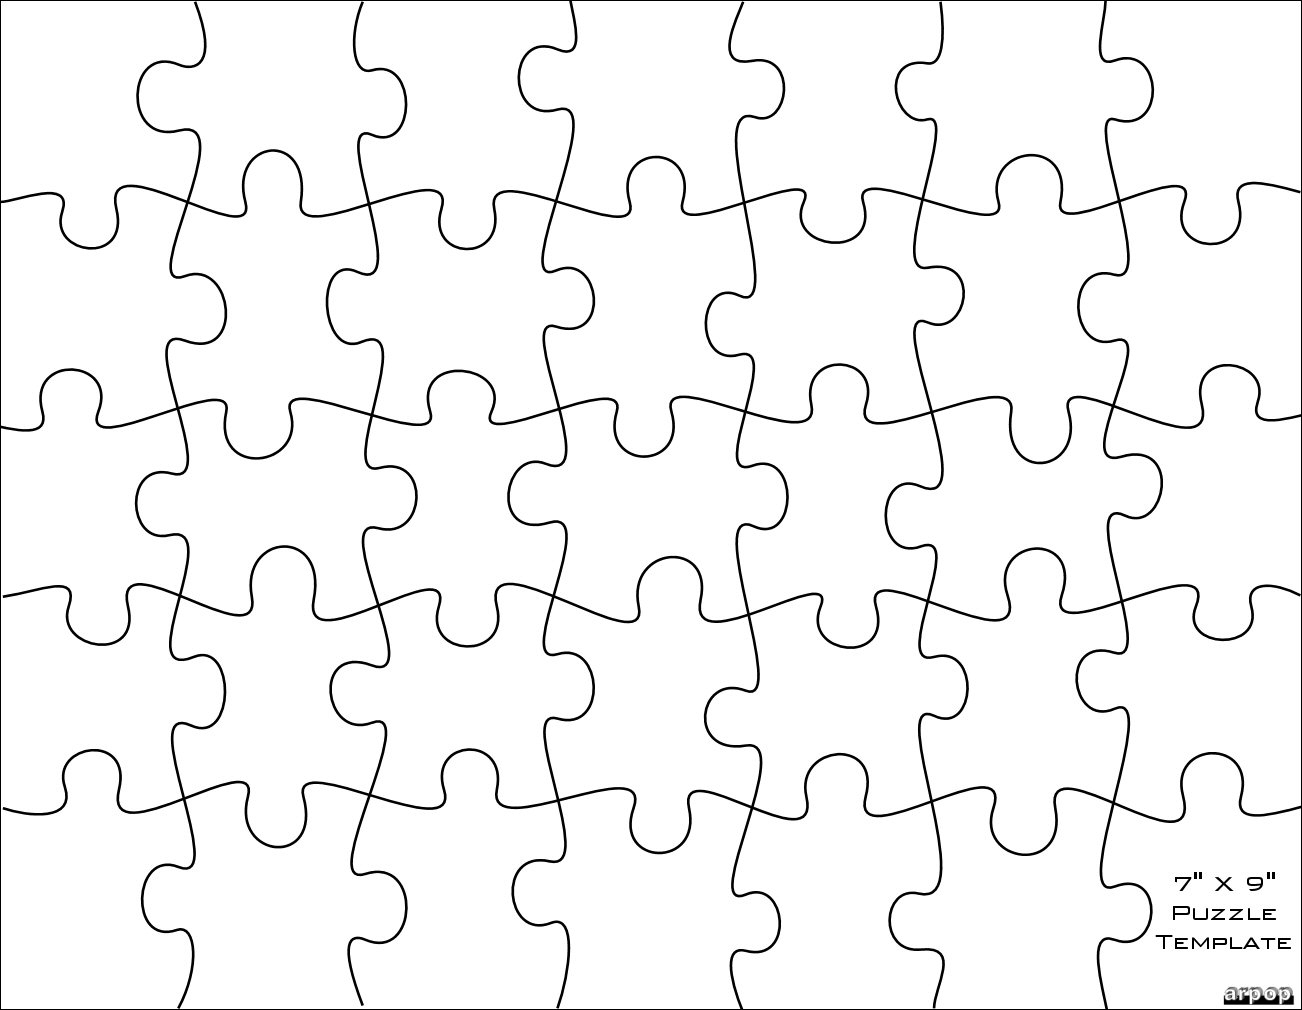 Free Puzzle Template, Download Free Clip Art, Free Clip Art On - Printable Jigsaw Puzzle Pdf